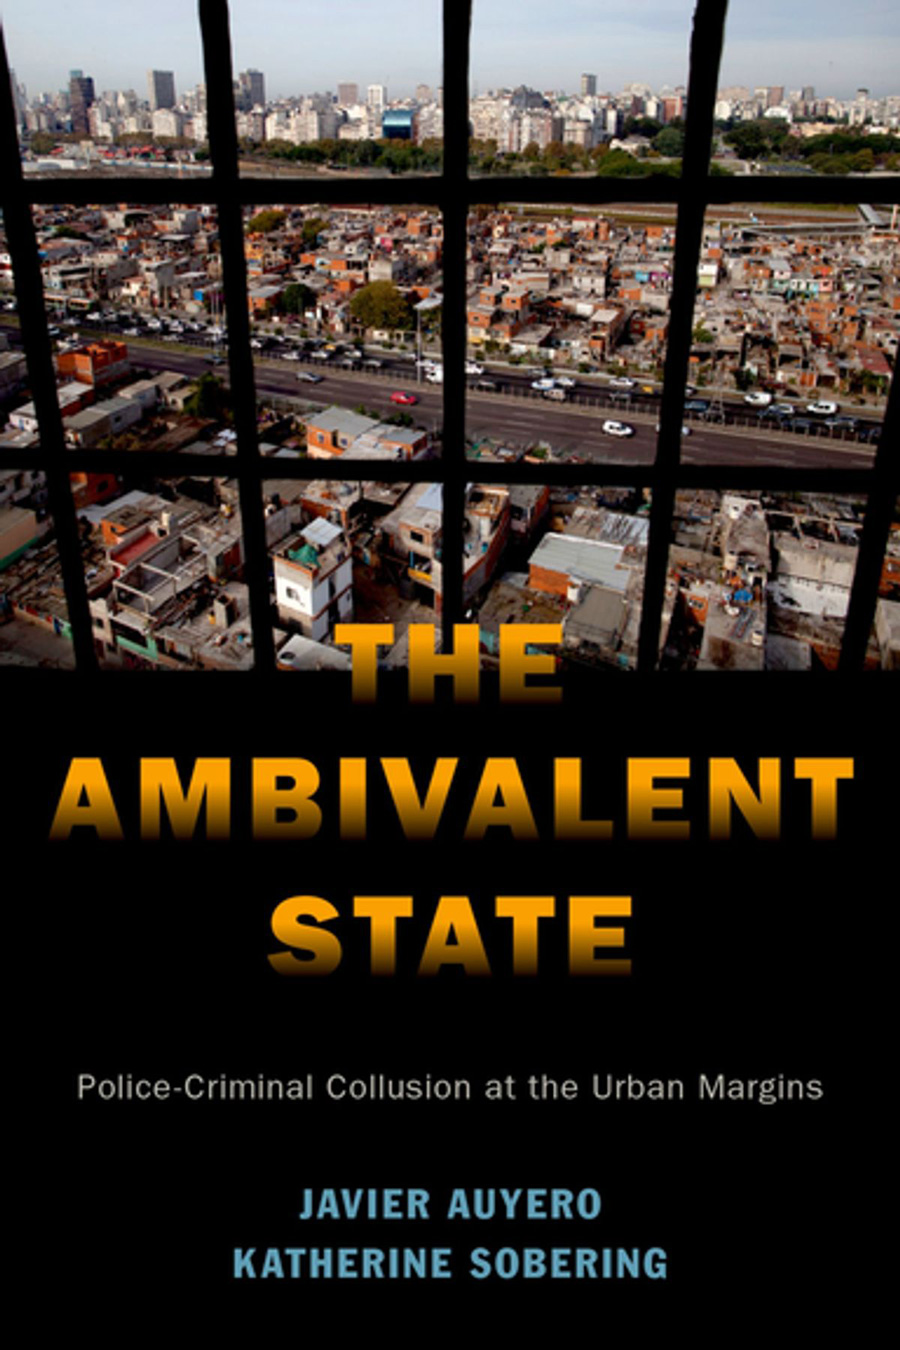 The Ambivalent State: Police-Criminal Collusion at the Urban Margins